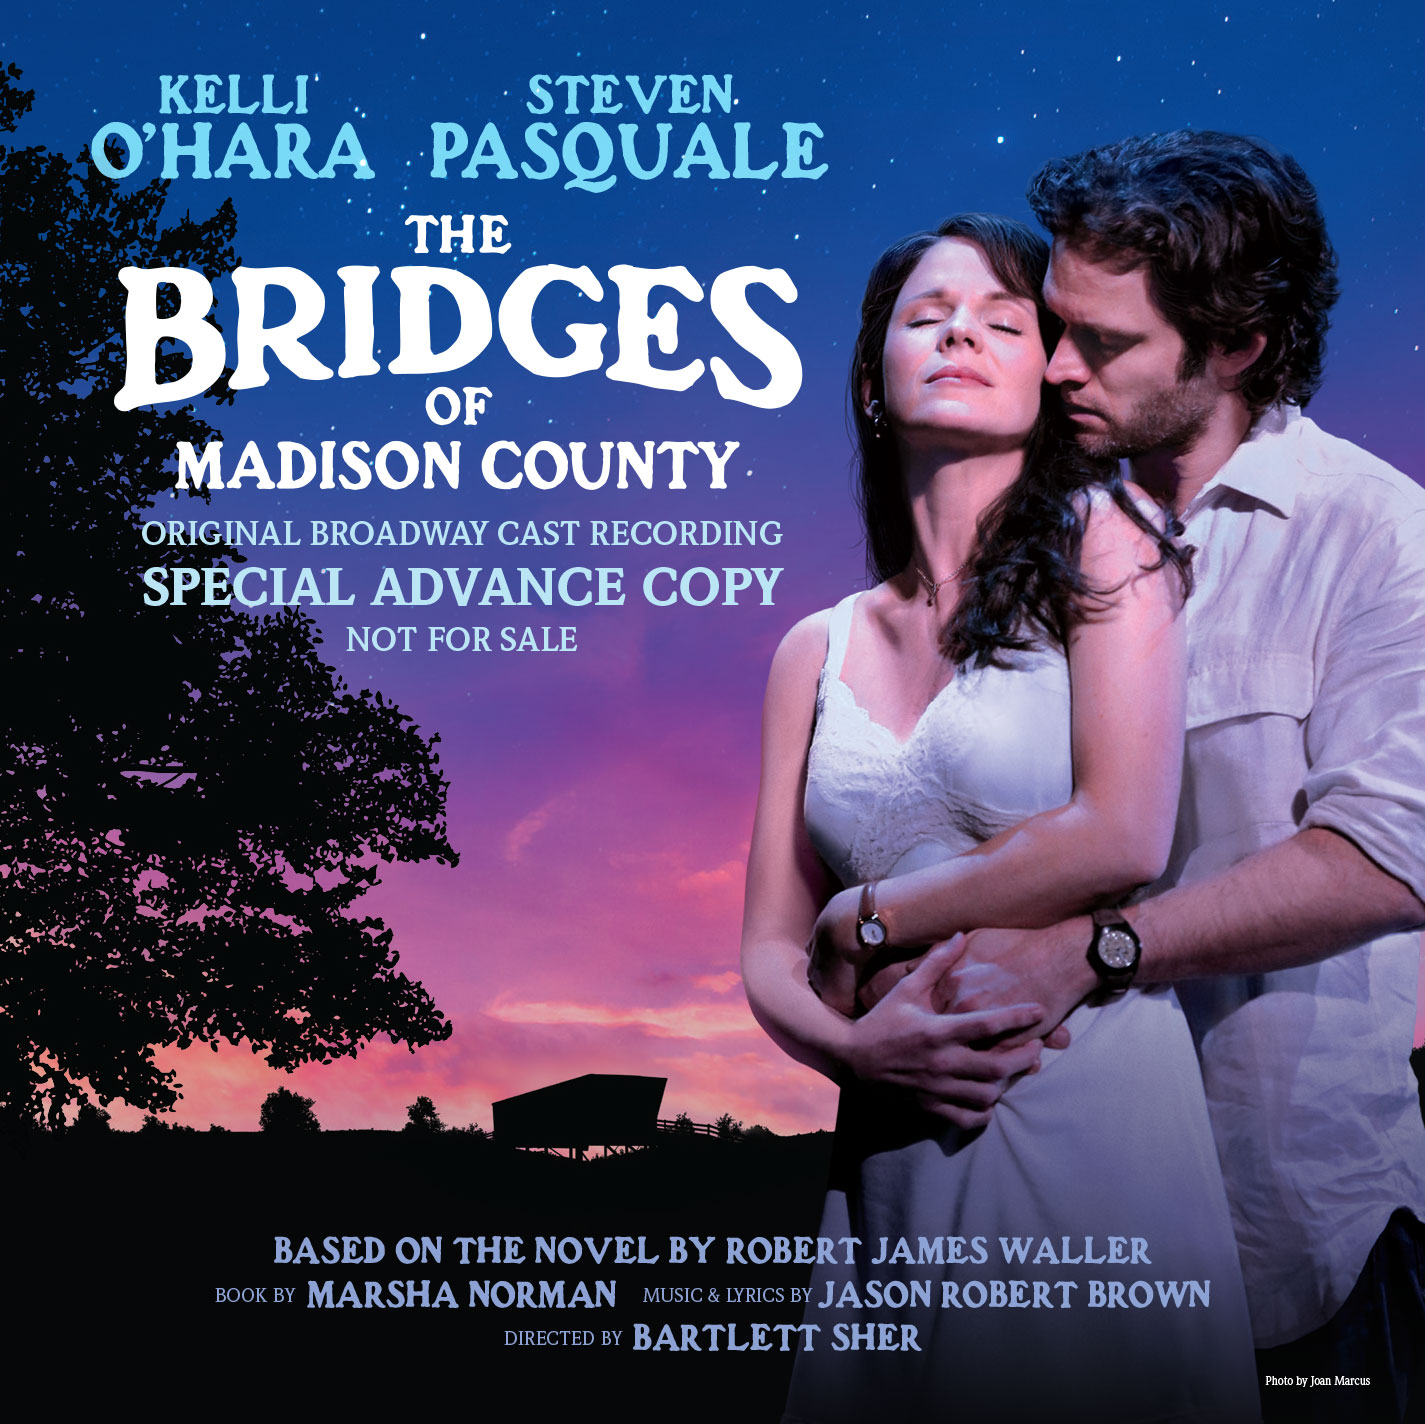 Special Advance Copy of The Bridges of Madison County